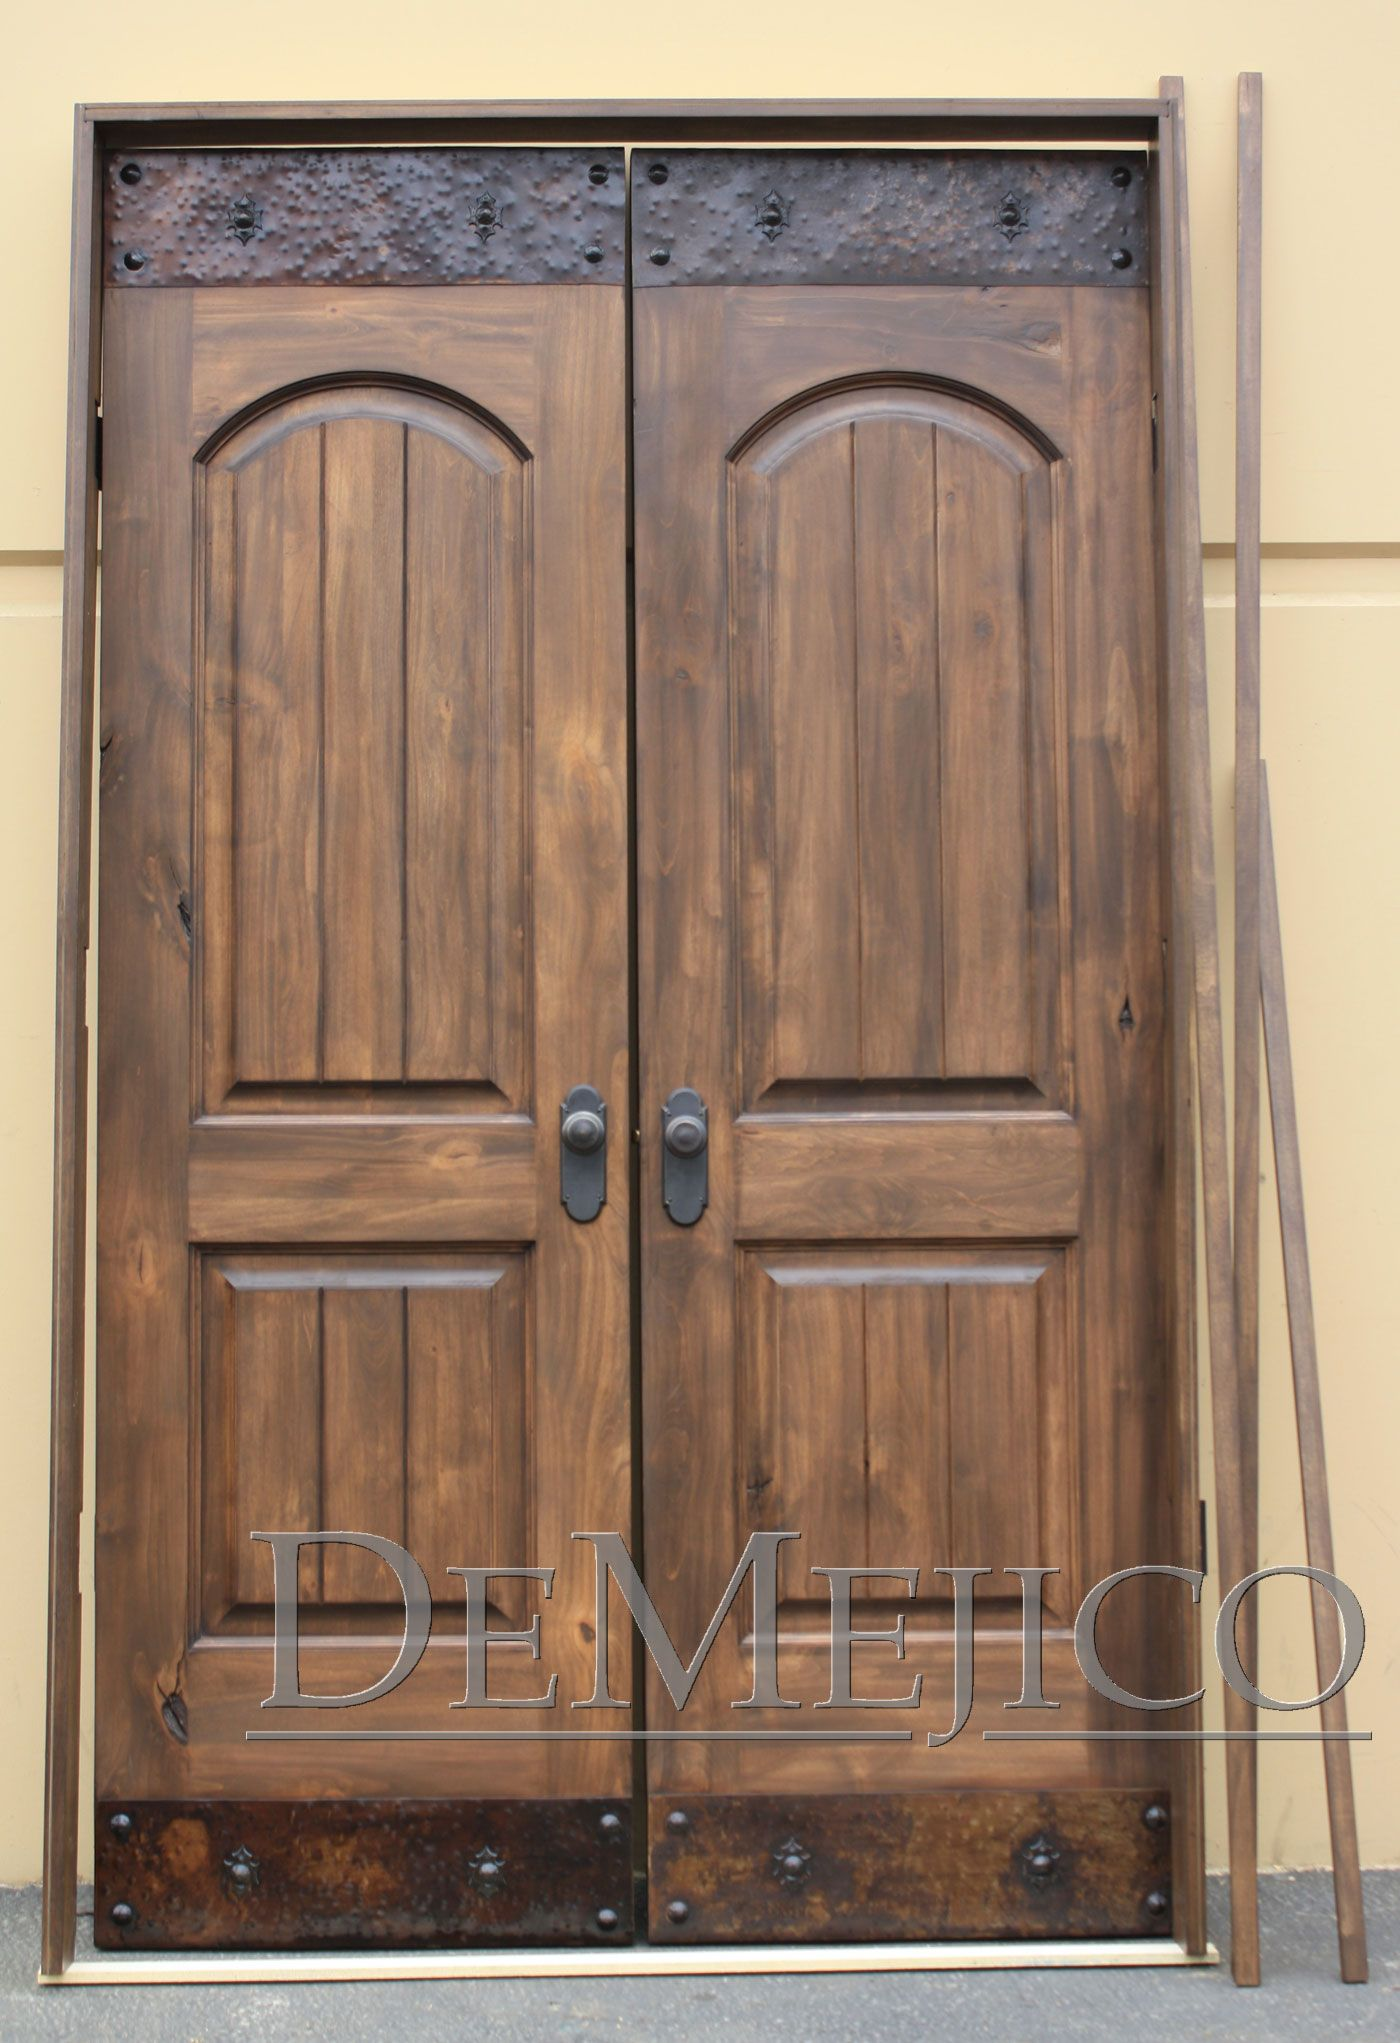 Rustic double front door - Exterior Captivating Image Of Rustic Farm Home Exterior And Front Porch Decoration Using Solid Mahogany Wood Double Fiberglass Entry Door And Cherry Wood